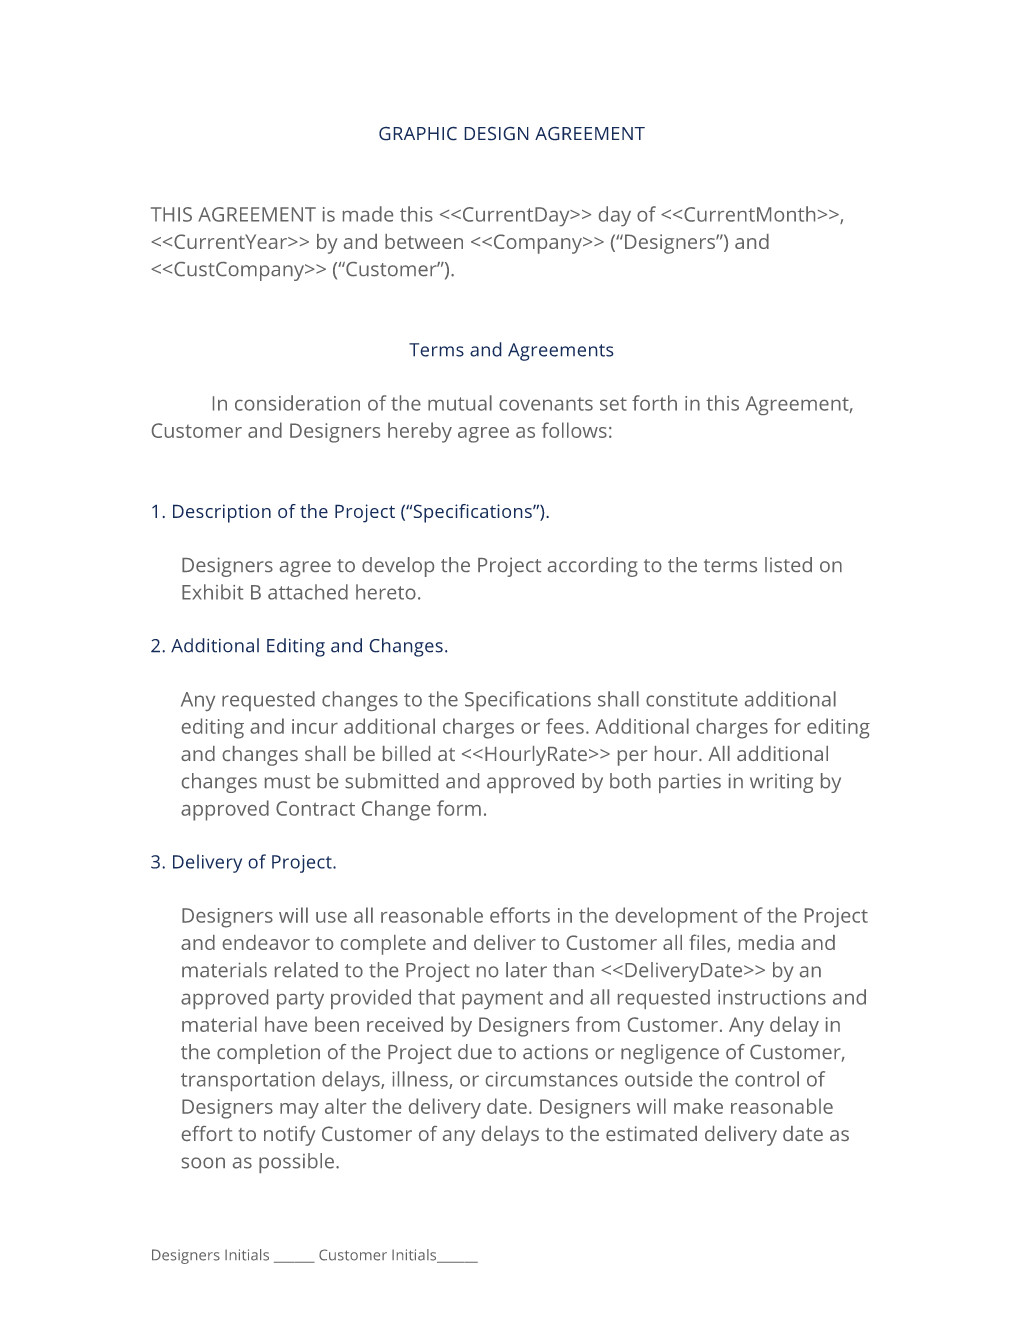 Graphic Design Contract Template Graphic Design Contract 3 Easy Steps